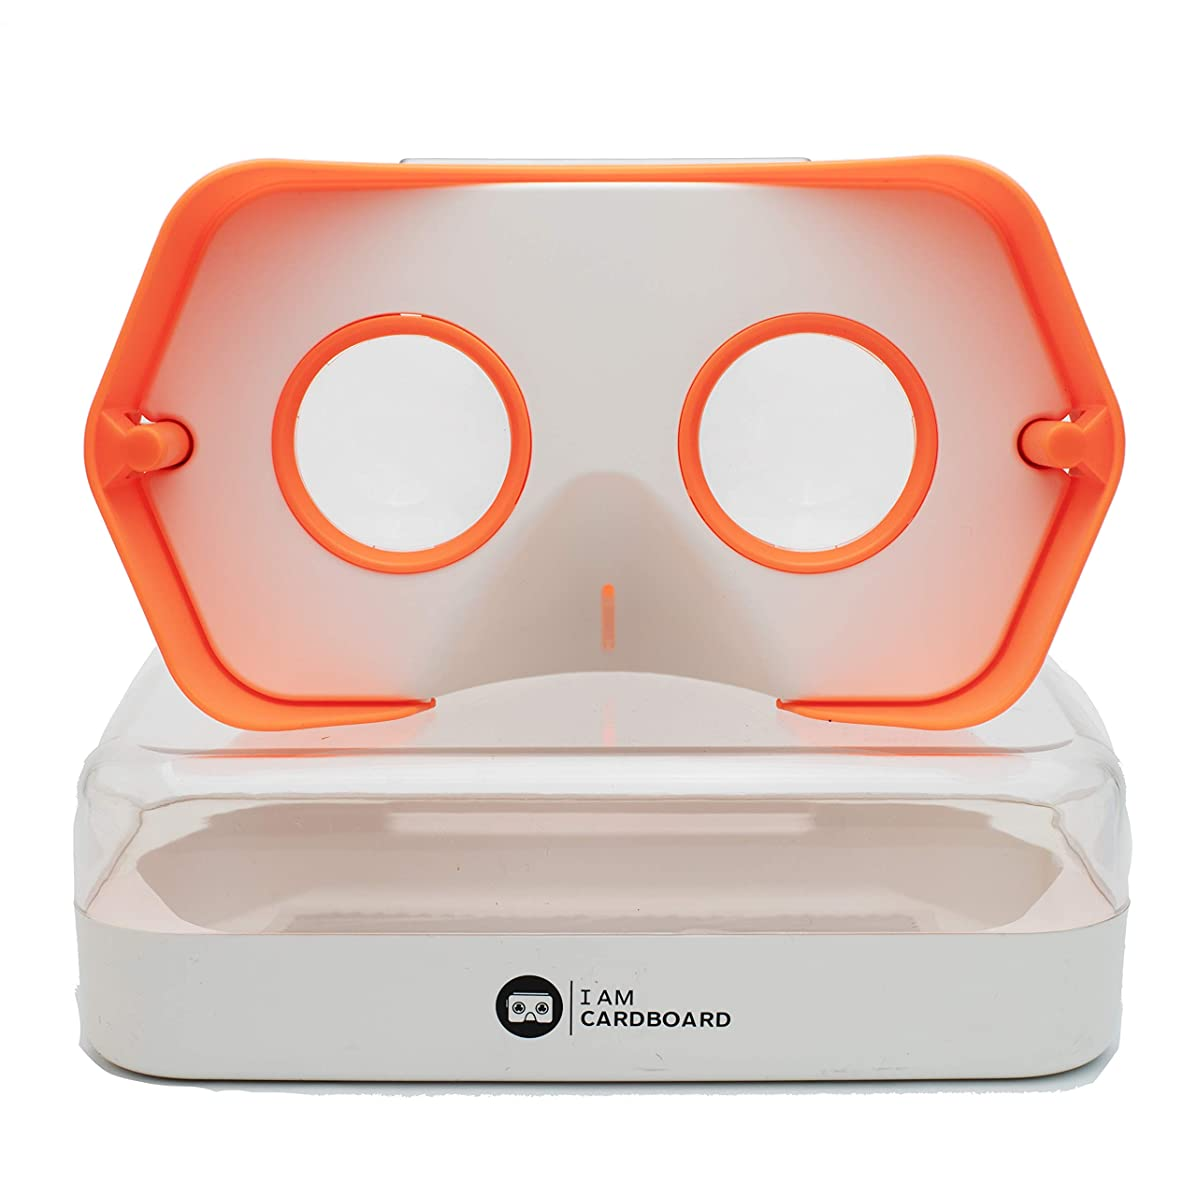 DSCVR VR Headset | The Best Virtual Reality Goggles for iPhone and Android | Google Cardboard v2 Inspired | Cool and Unique Travel Gift Under 25 Dollars